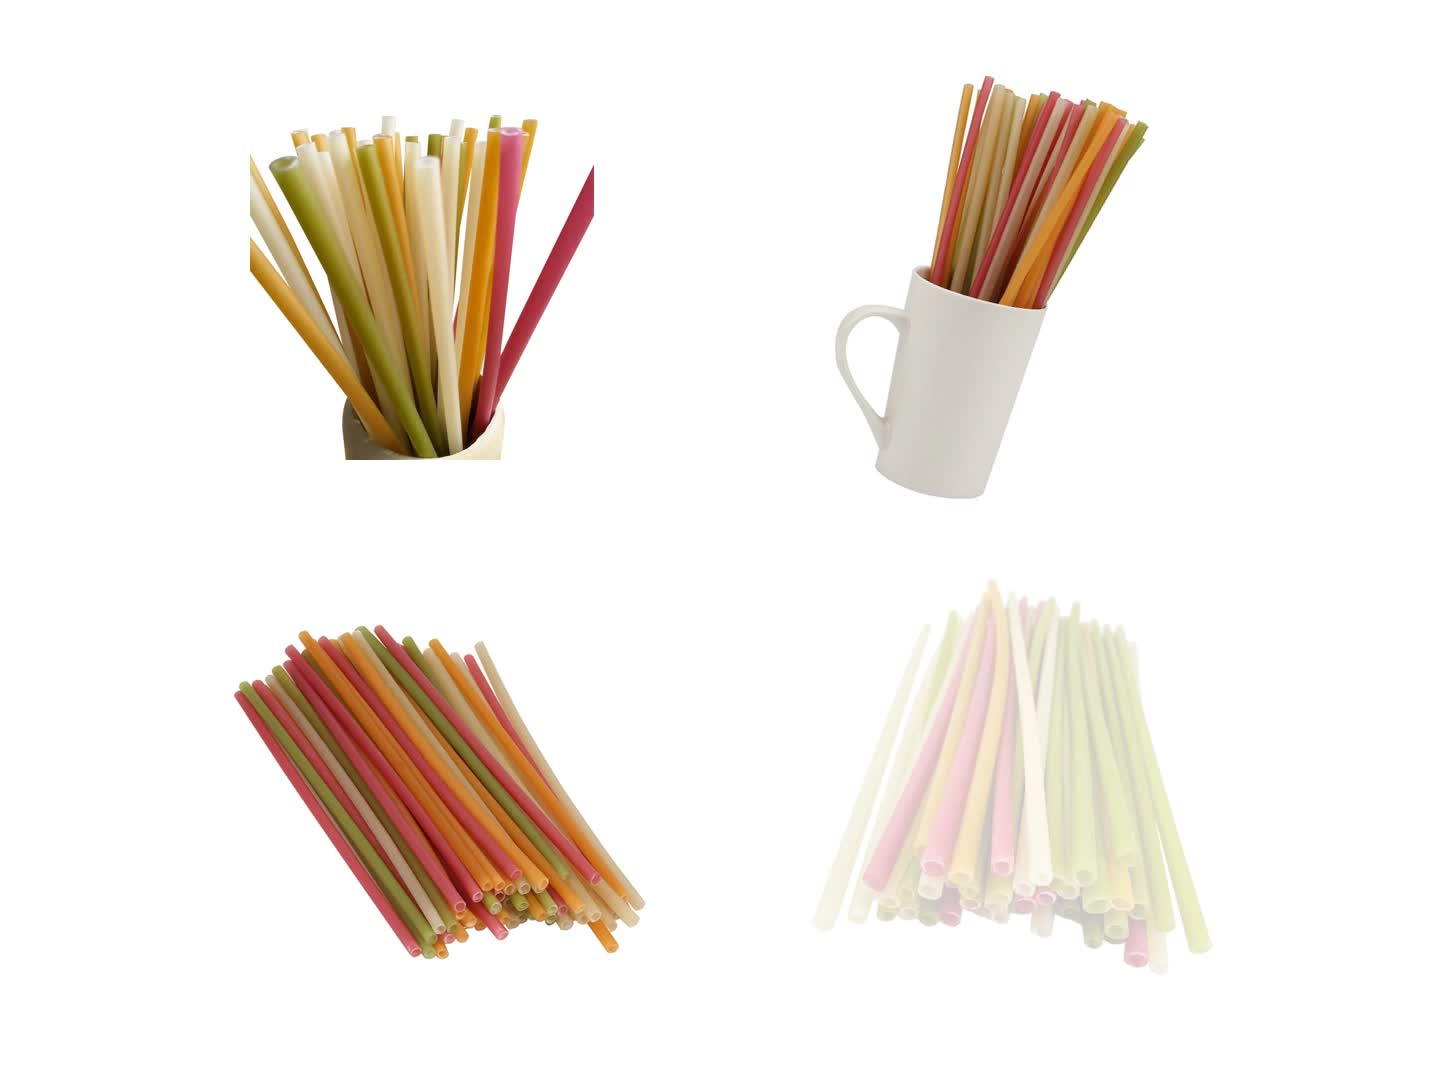 Disposable rice make wheat Straw Biodegradable Compostable Non paper straw edible Straw Wholesale